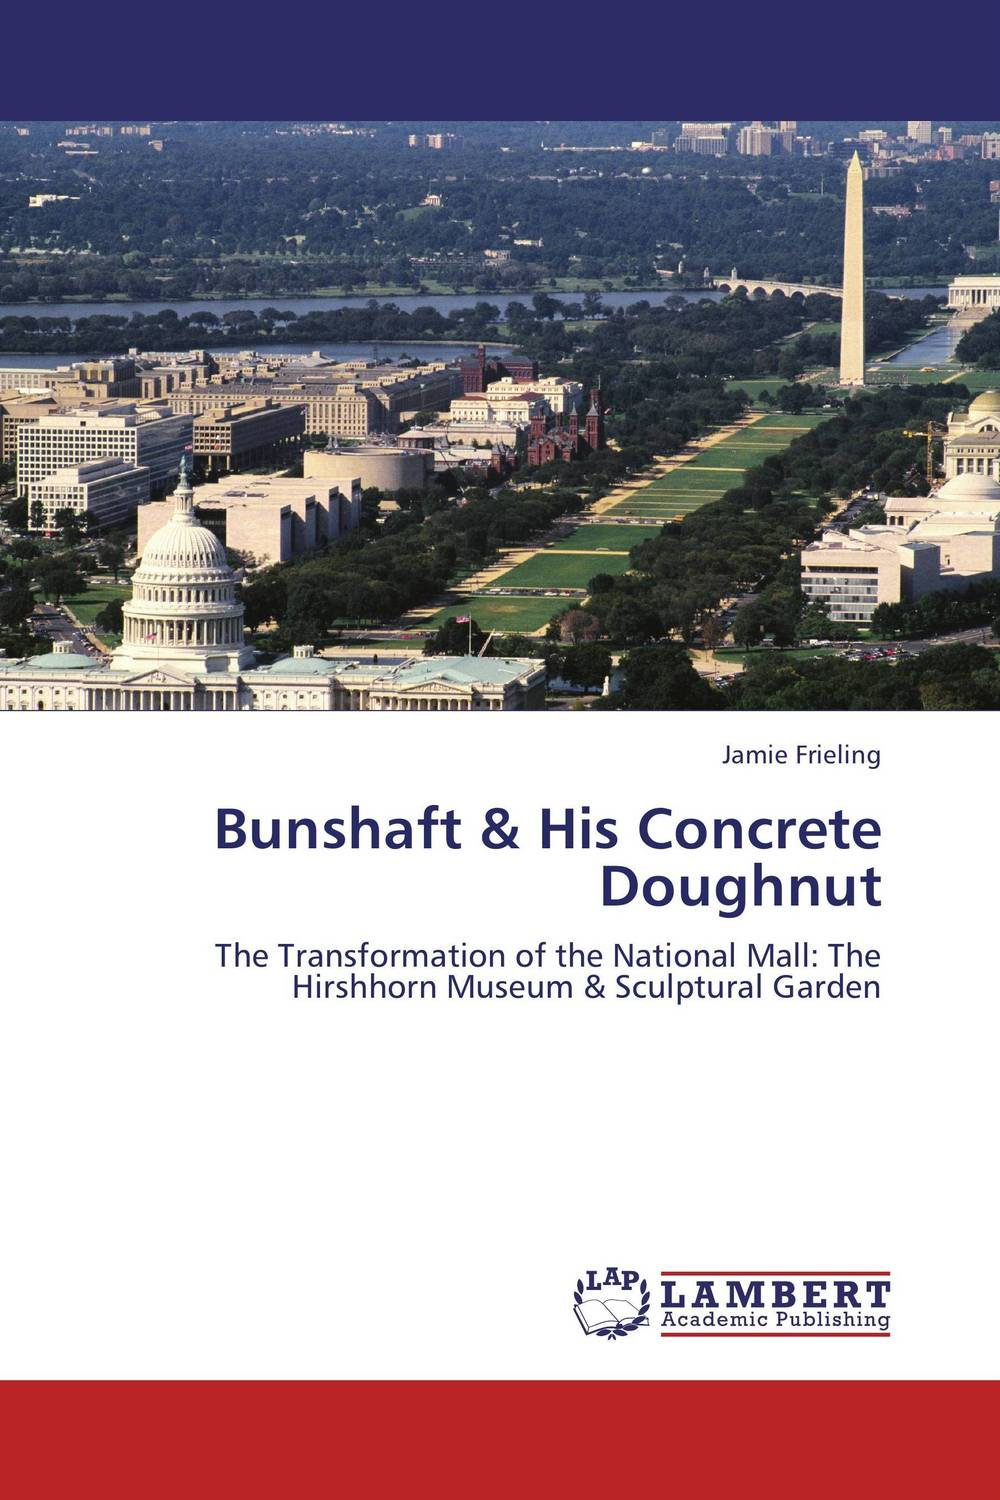 Bunshaft & His Concrete Doughnut smithsonian national air and spase museum набор из 100 карточек